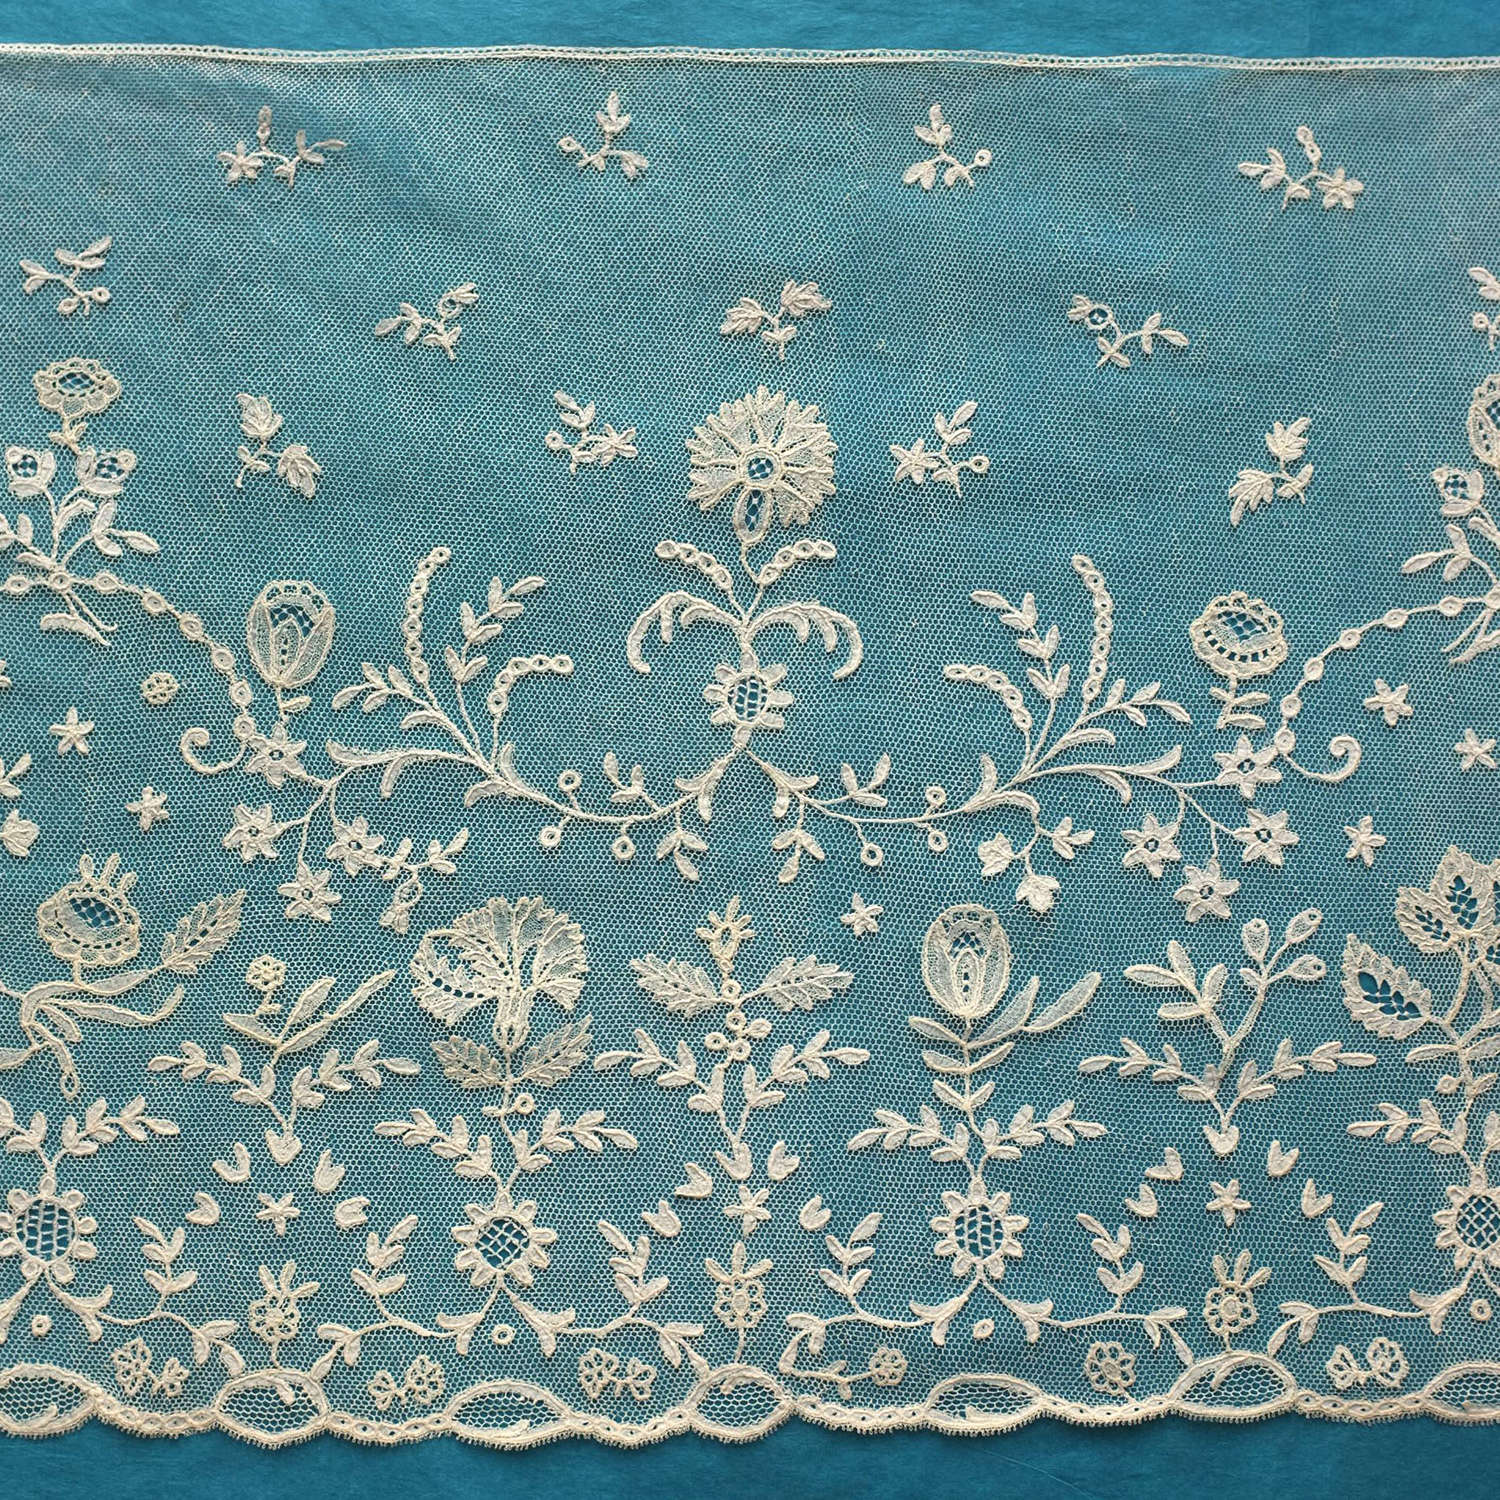 Antique Brussels Bobbin Applique Lace Border, circa 1810-20